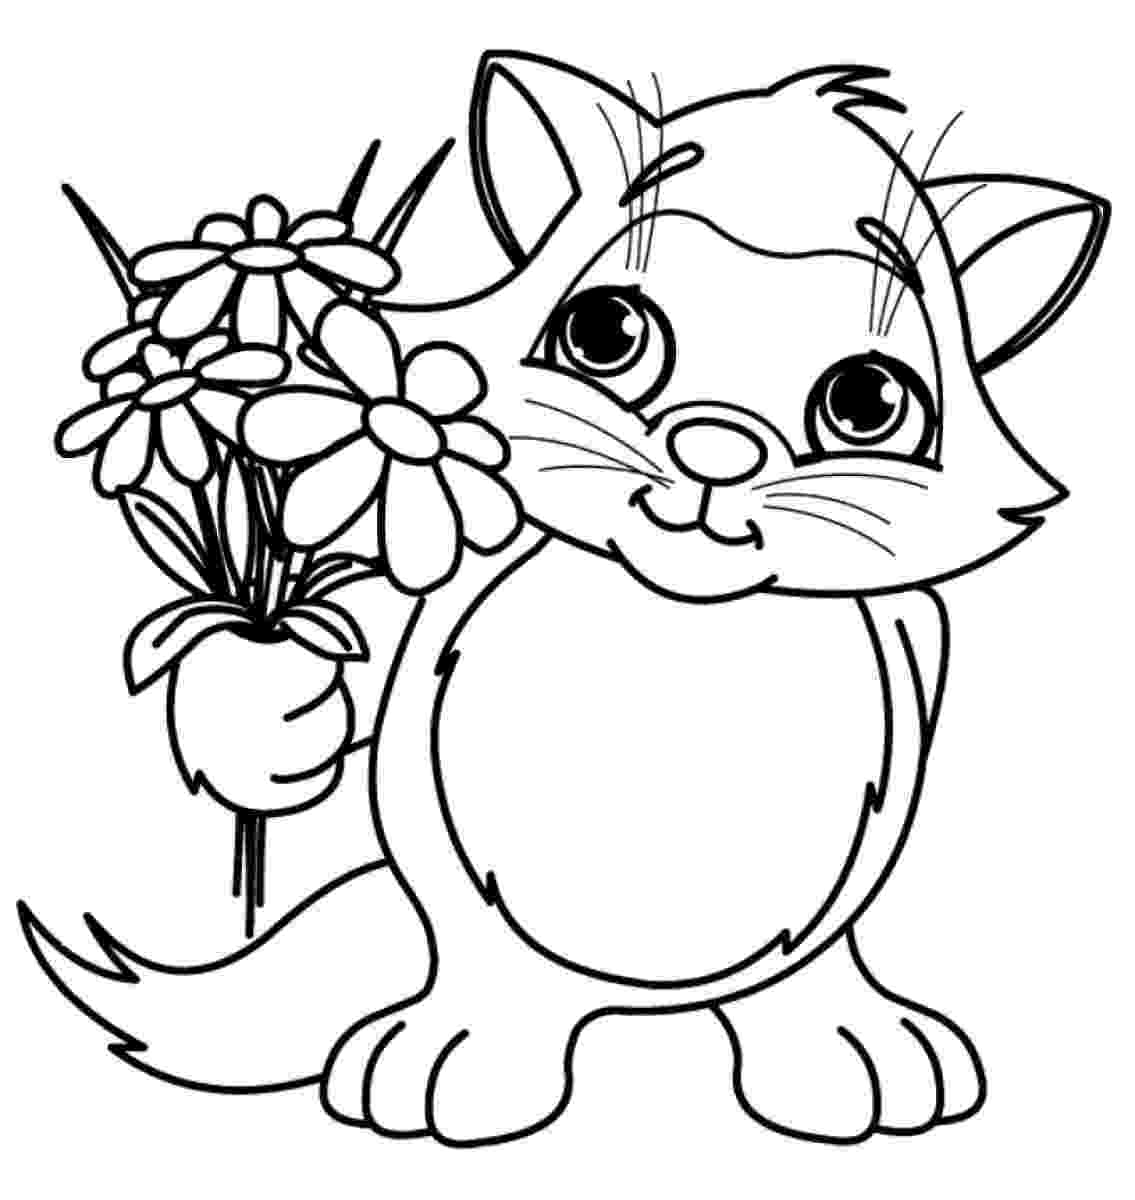 flowers color pages free printable flower coloring pages for kids best pages flowers color